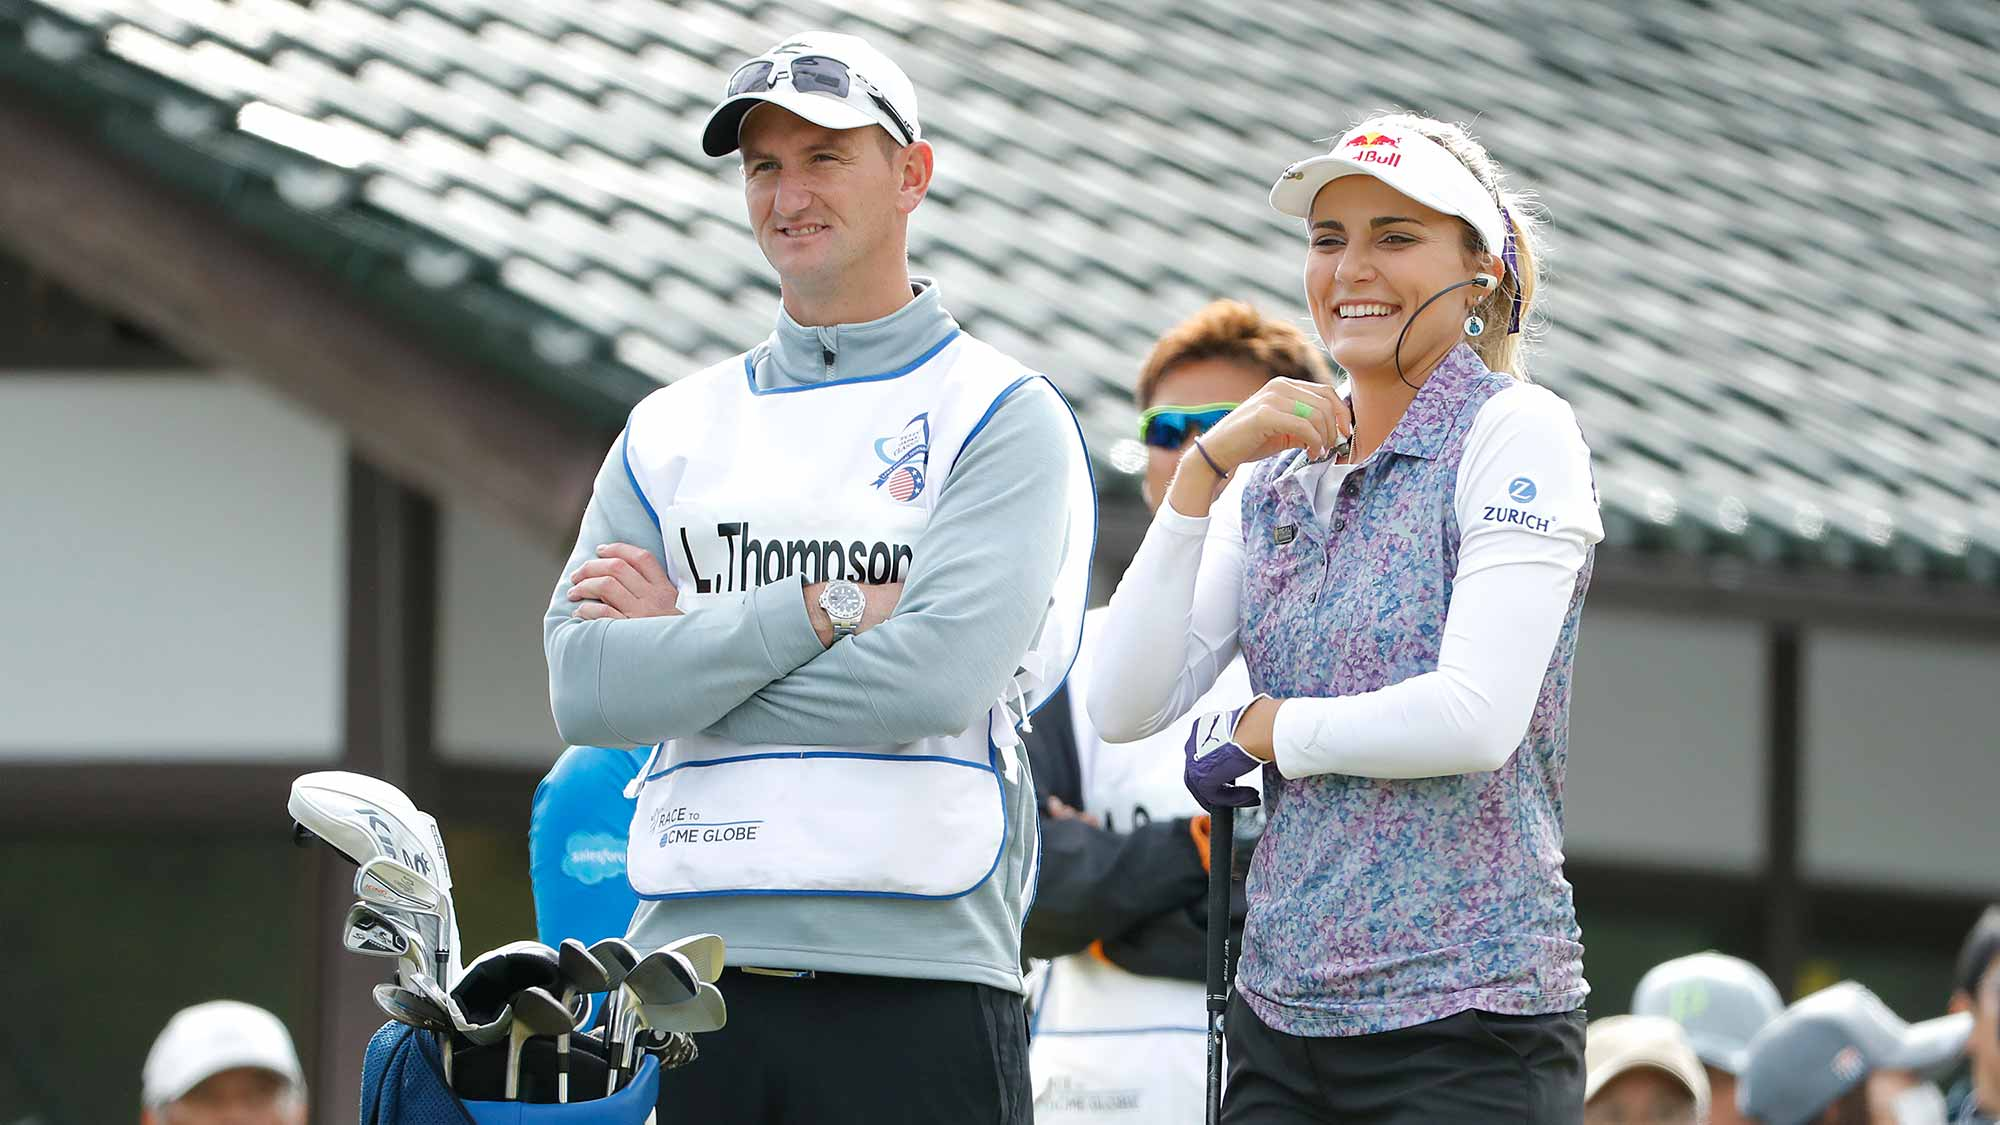 Lexi Thompson of United States watches on the first hole during the first round of the TOTO Japan Classic at Seta Golf Course on November 02, 2018 in Otsu, Shiga, Japan